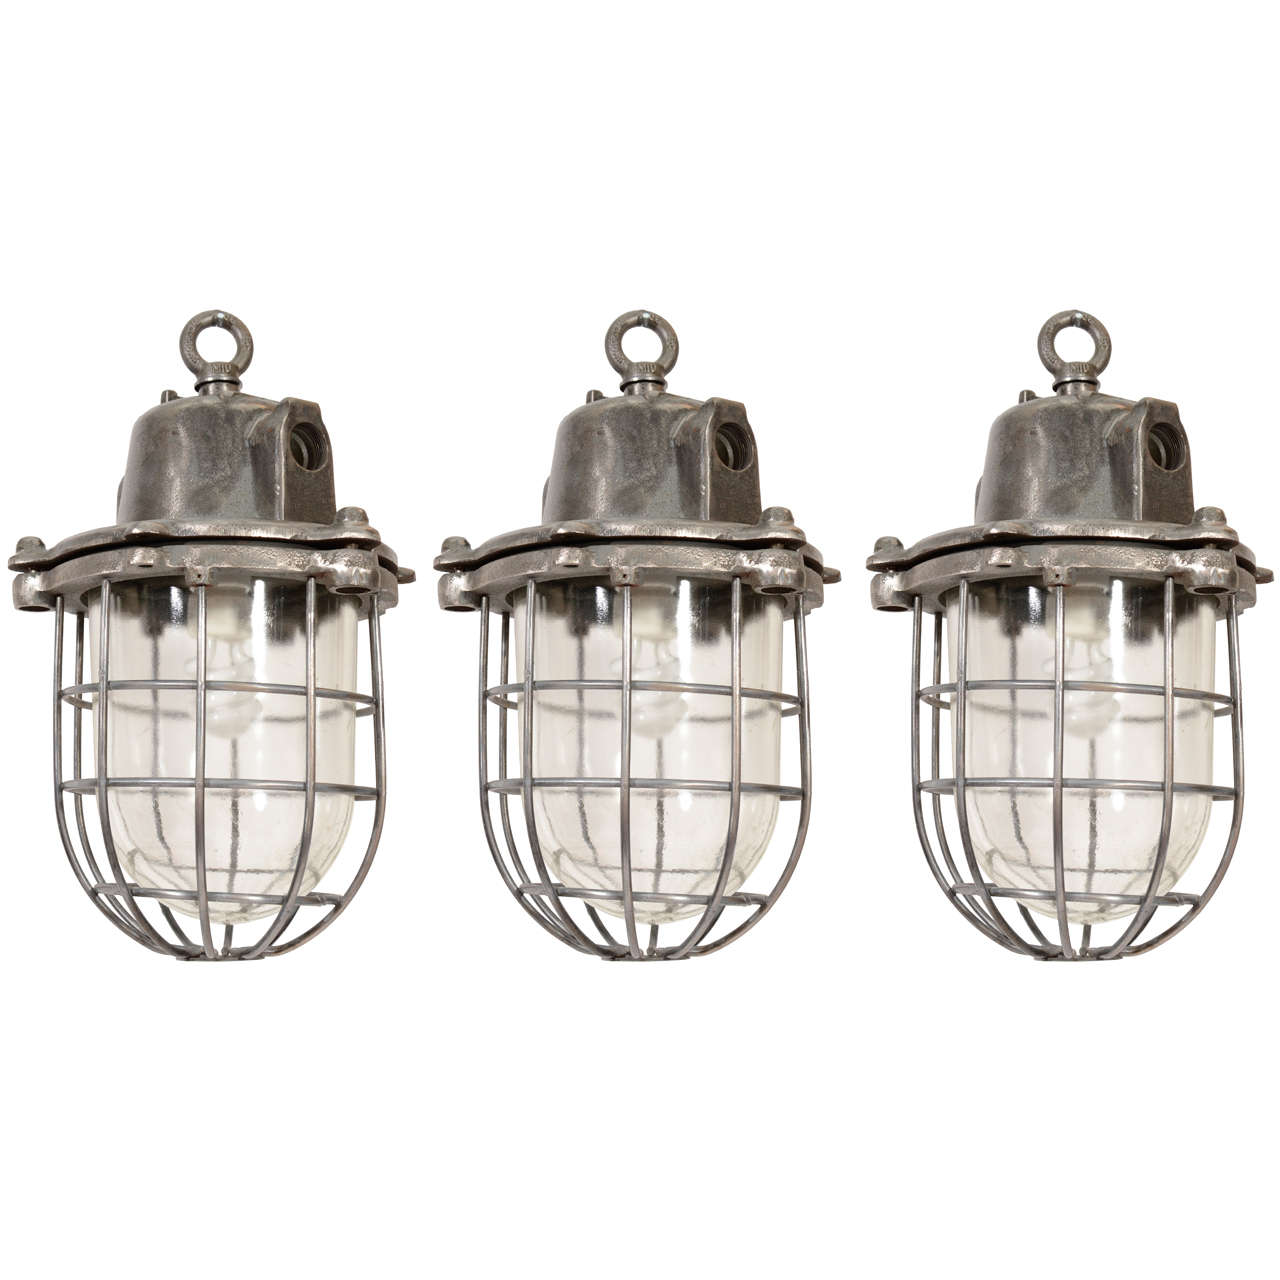 French Metal Industrial Pendant Light With Cage And Bell